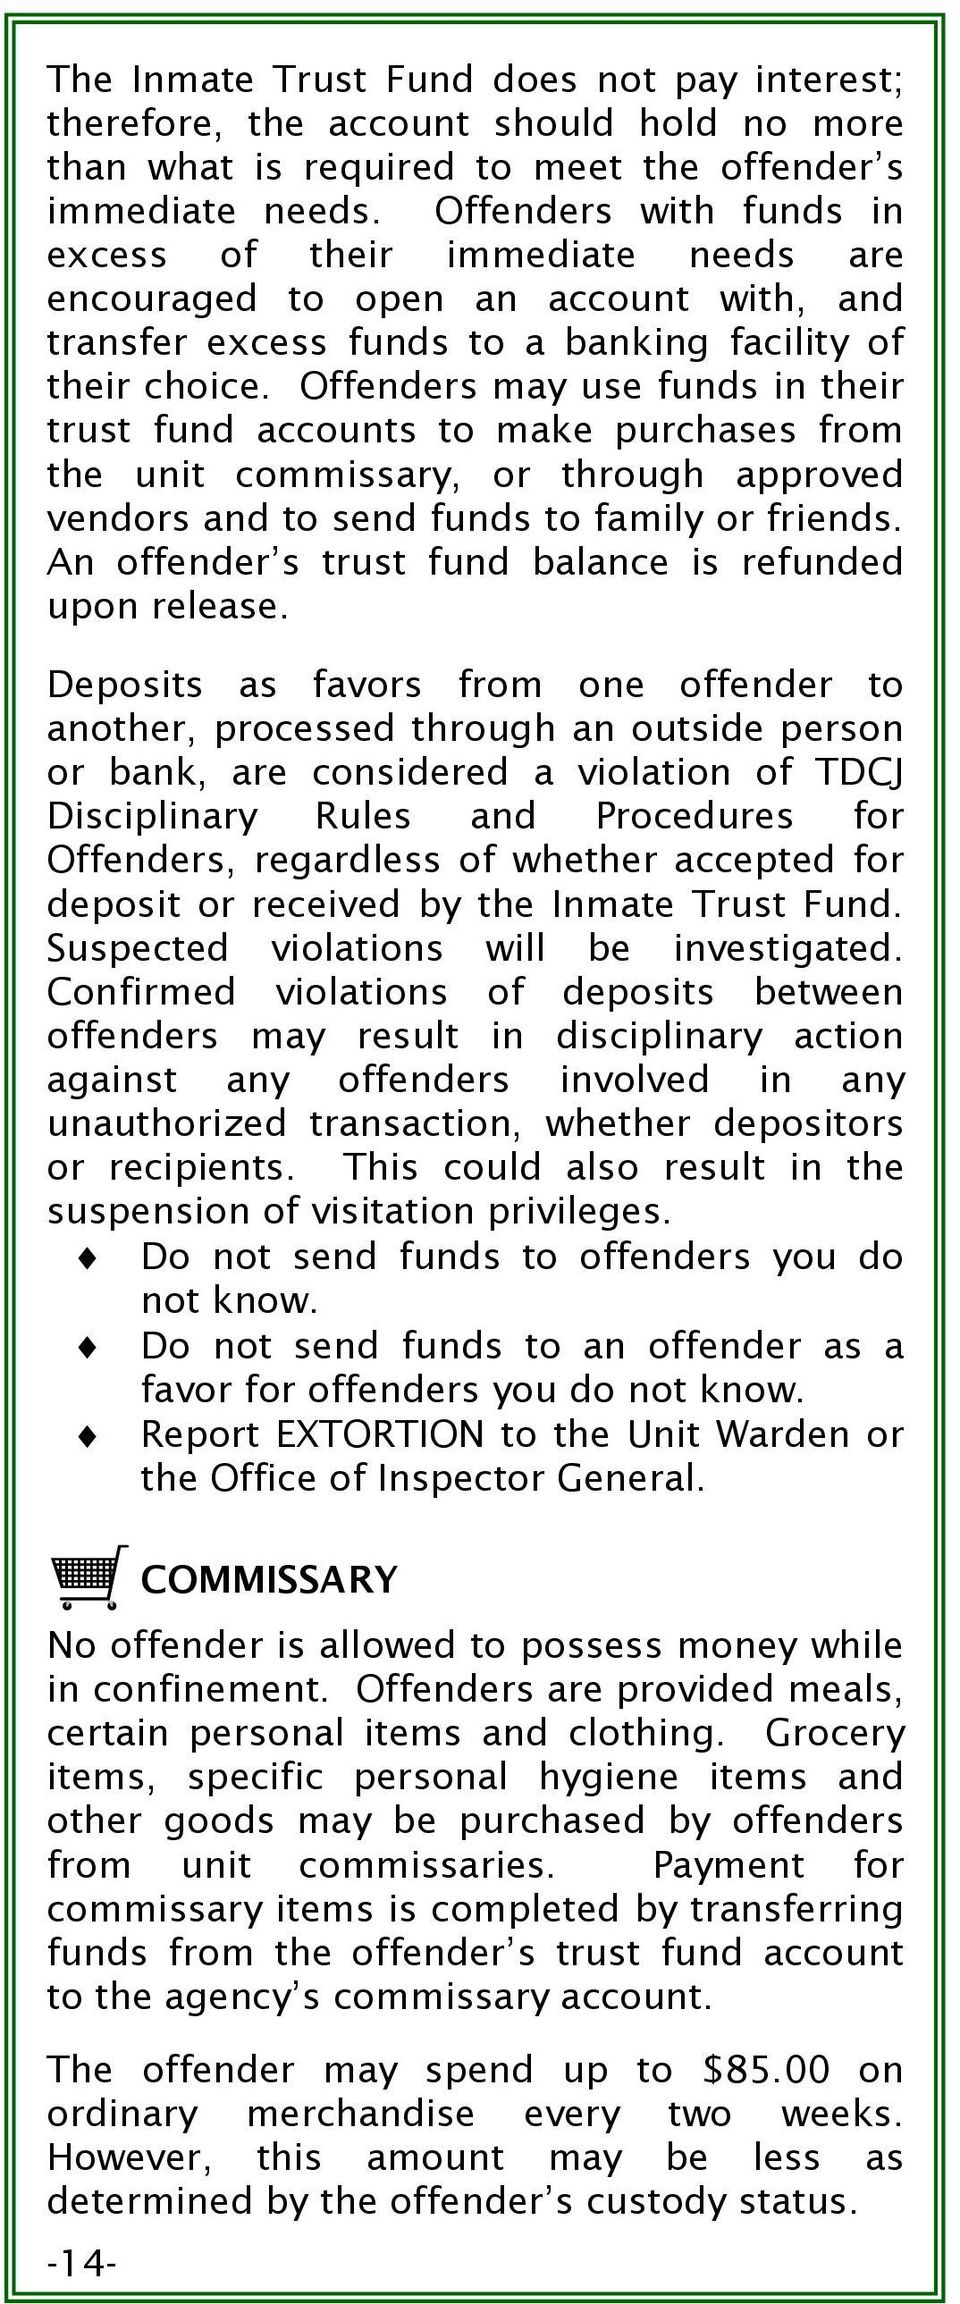 Offenders may use funds in their trust fund accounts to make purchases from the unit commissary, or through approved vendors and to send funds to family or friends.